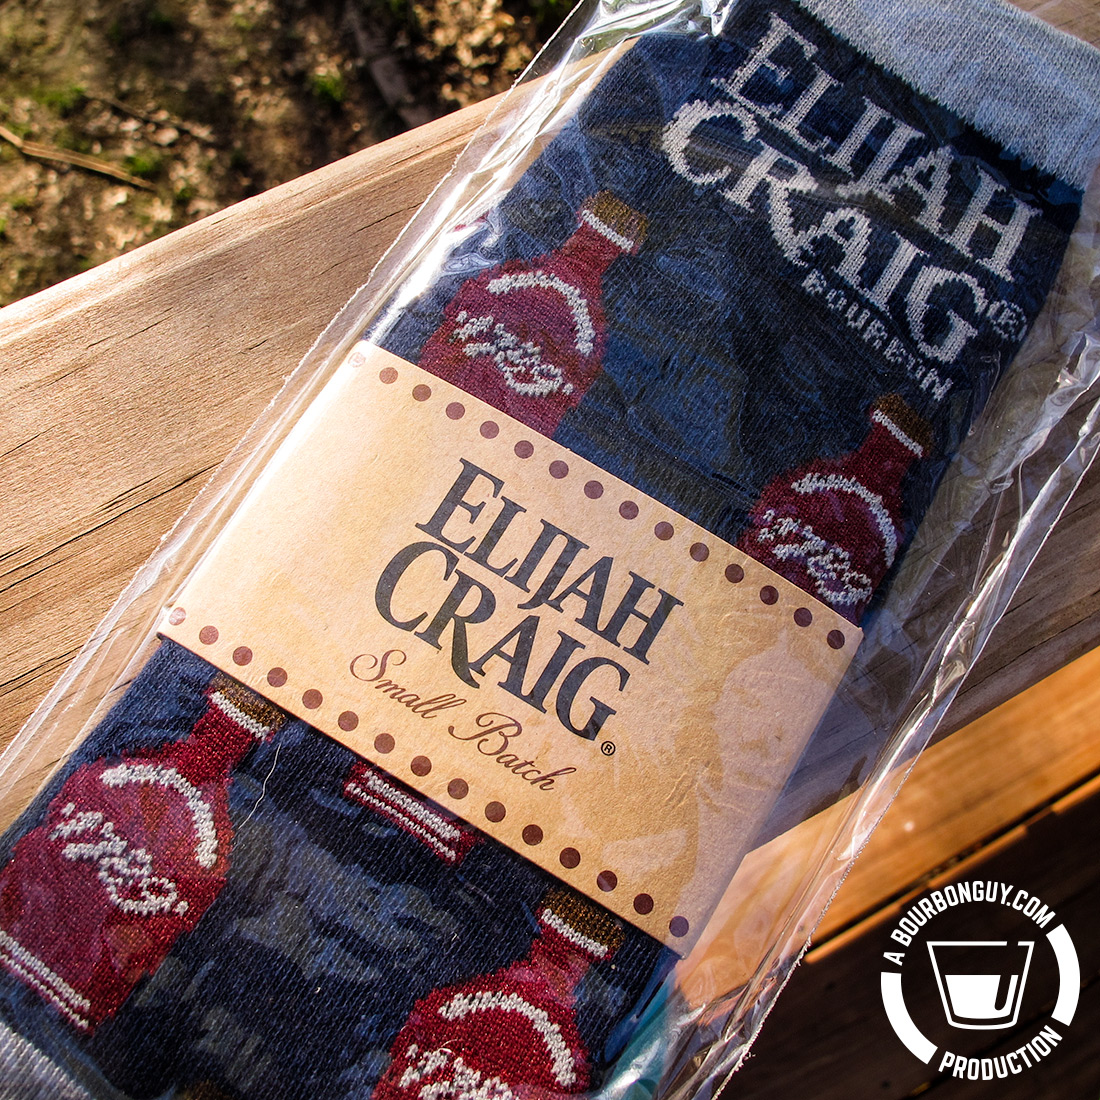 IMAGE: Elijah Craig Small Batch Socks. Enter to win this pair below.